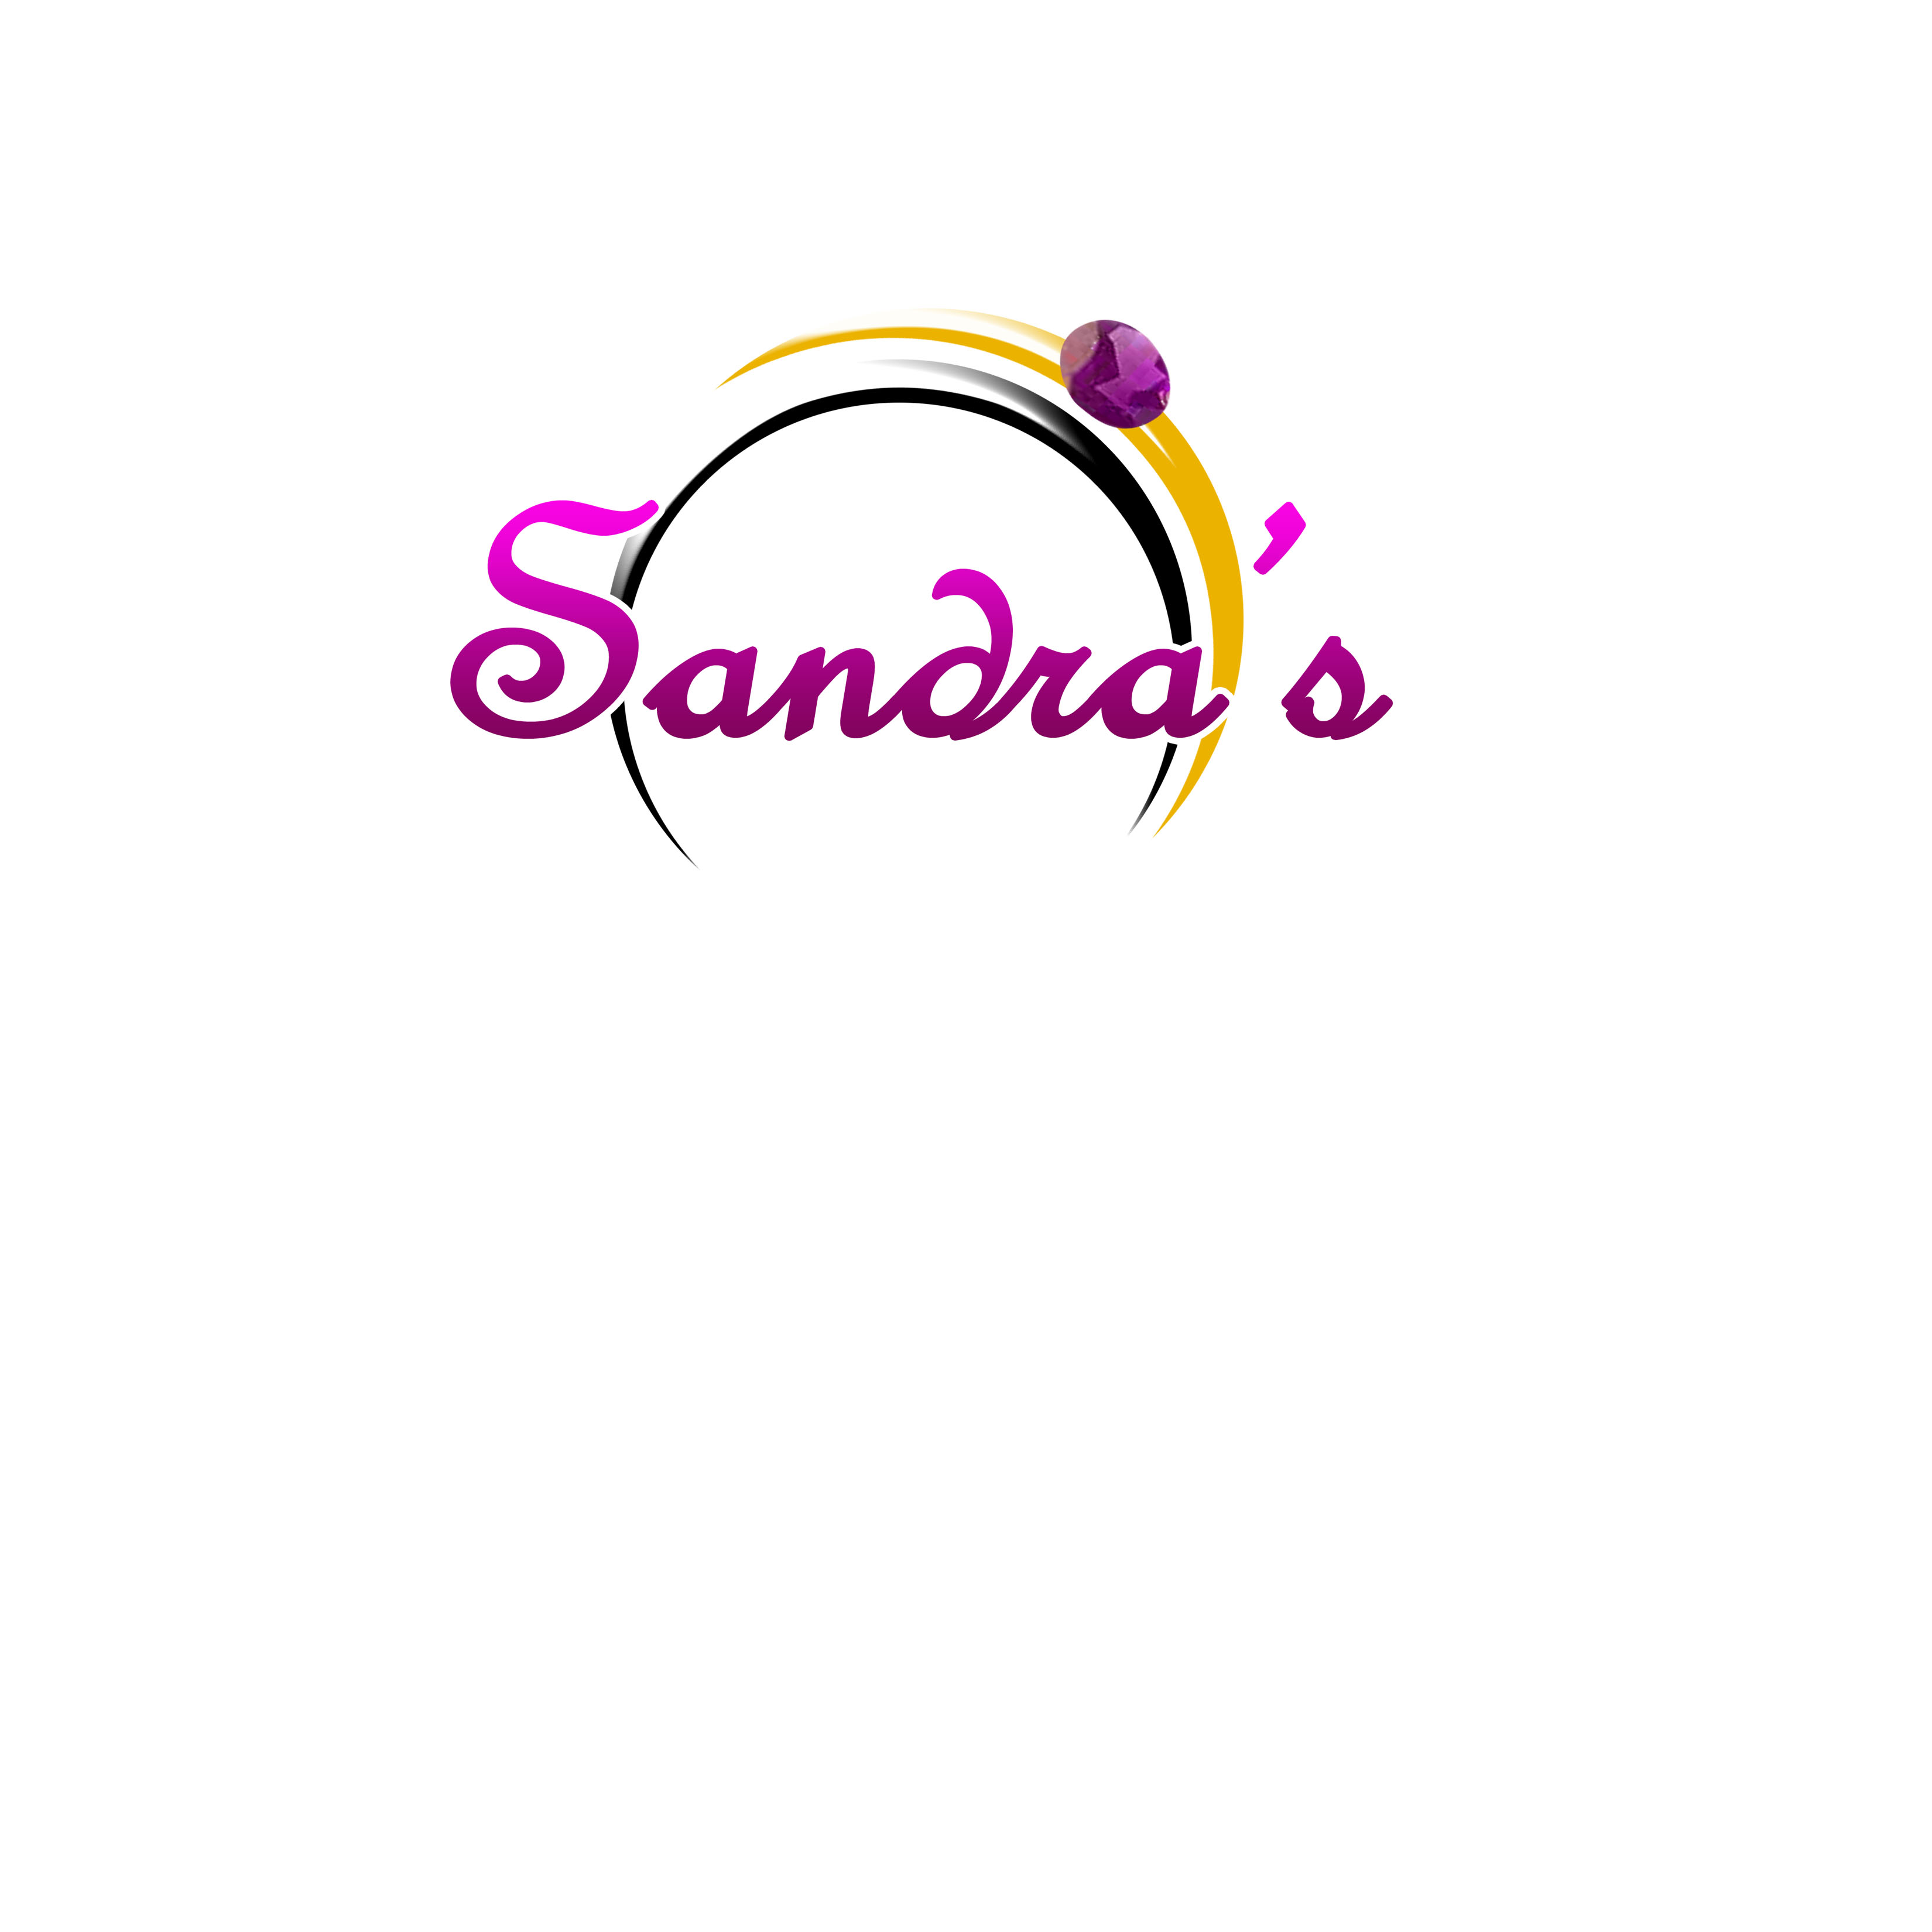 Logo Design by Alan Esclamado - Entry No. 38 in the Logo Design Contest Imaginative Logo Design for Sandra's.